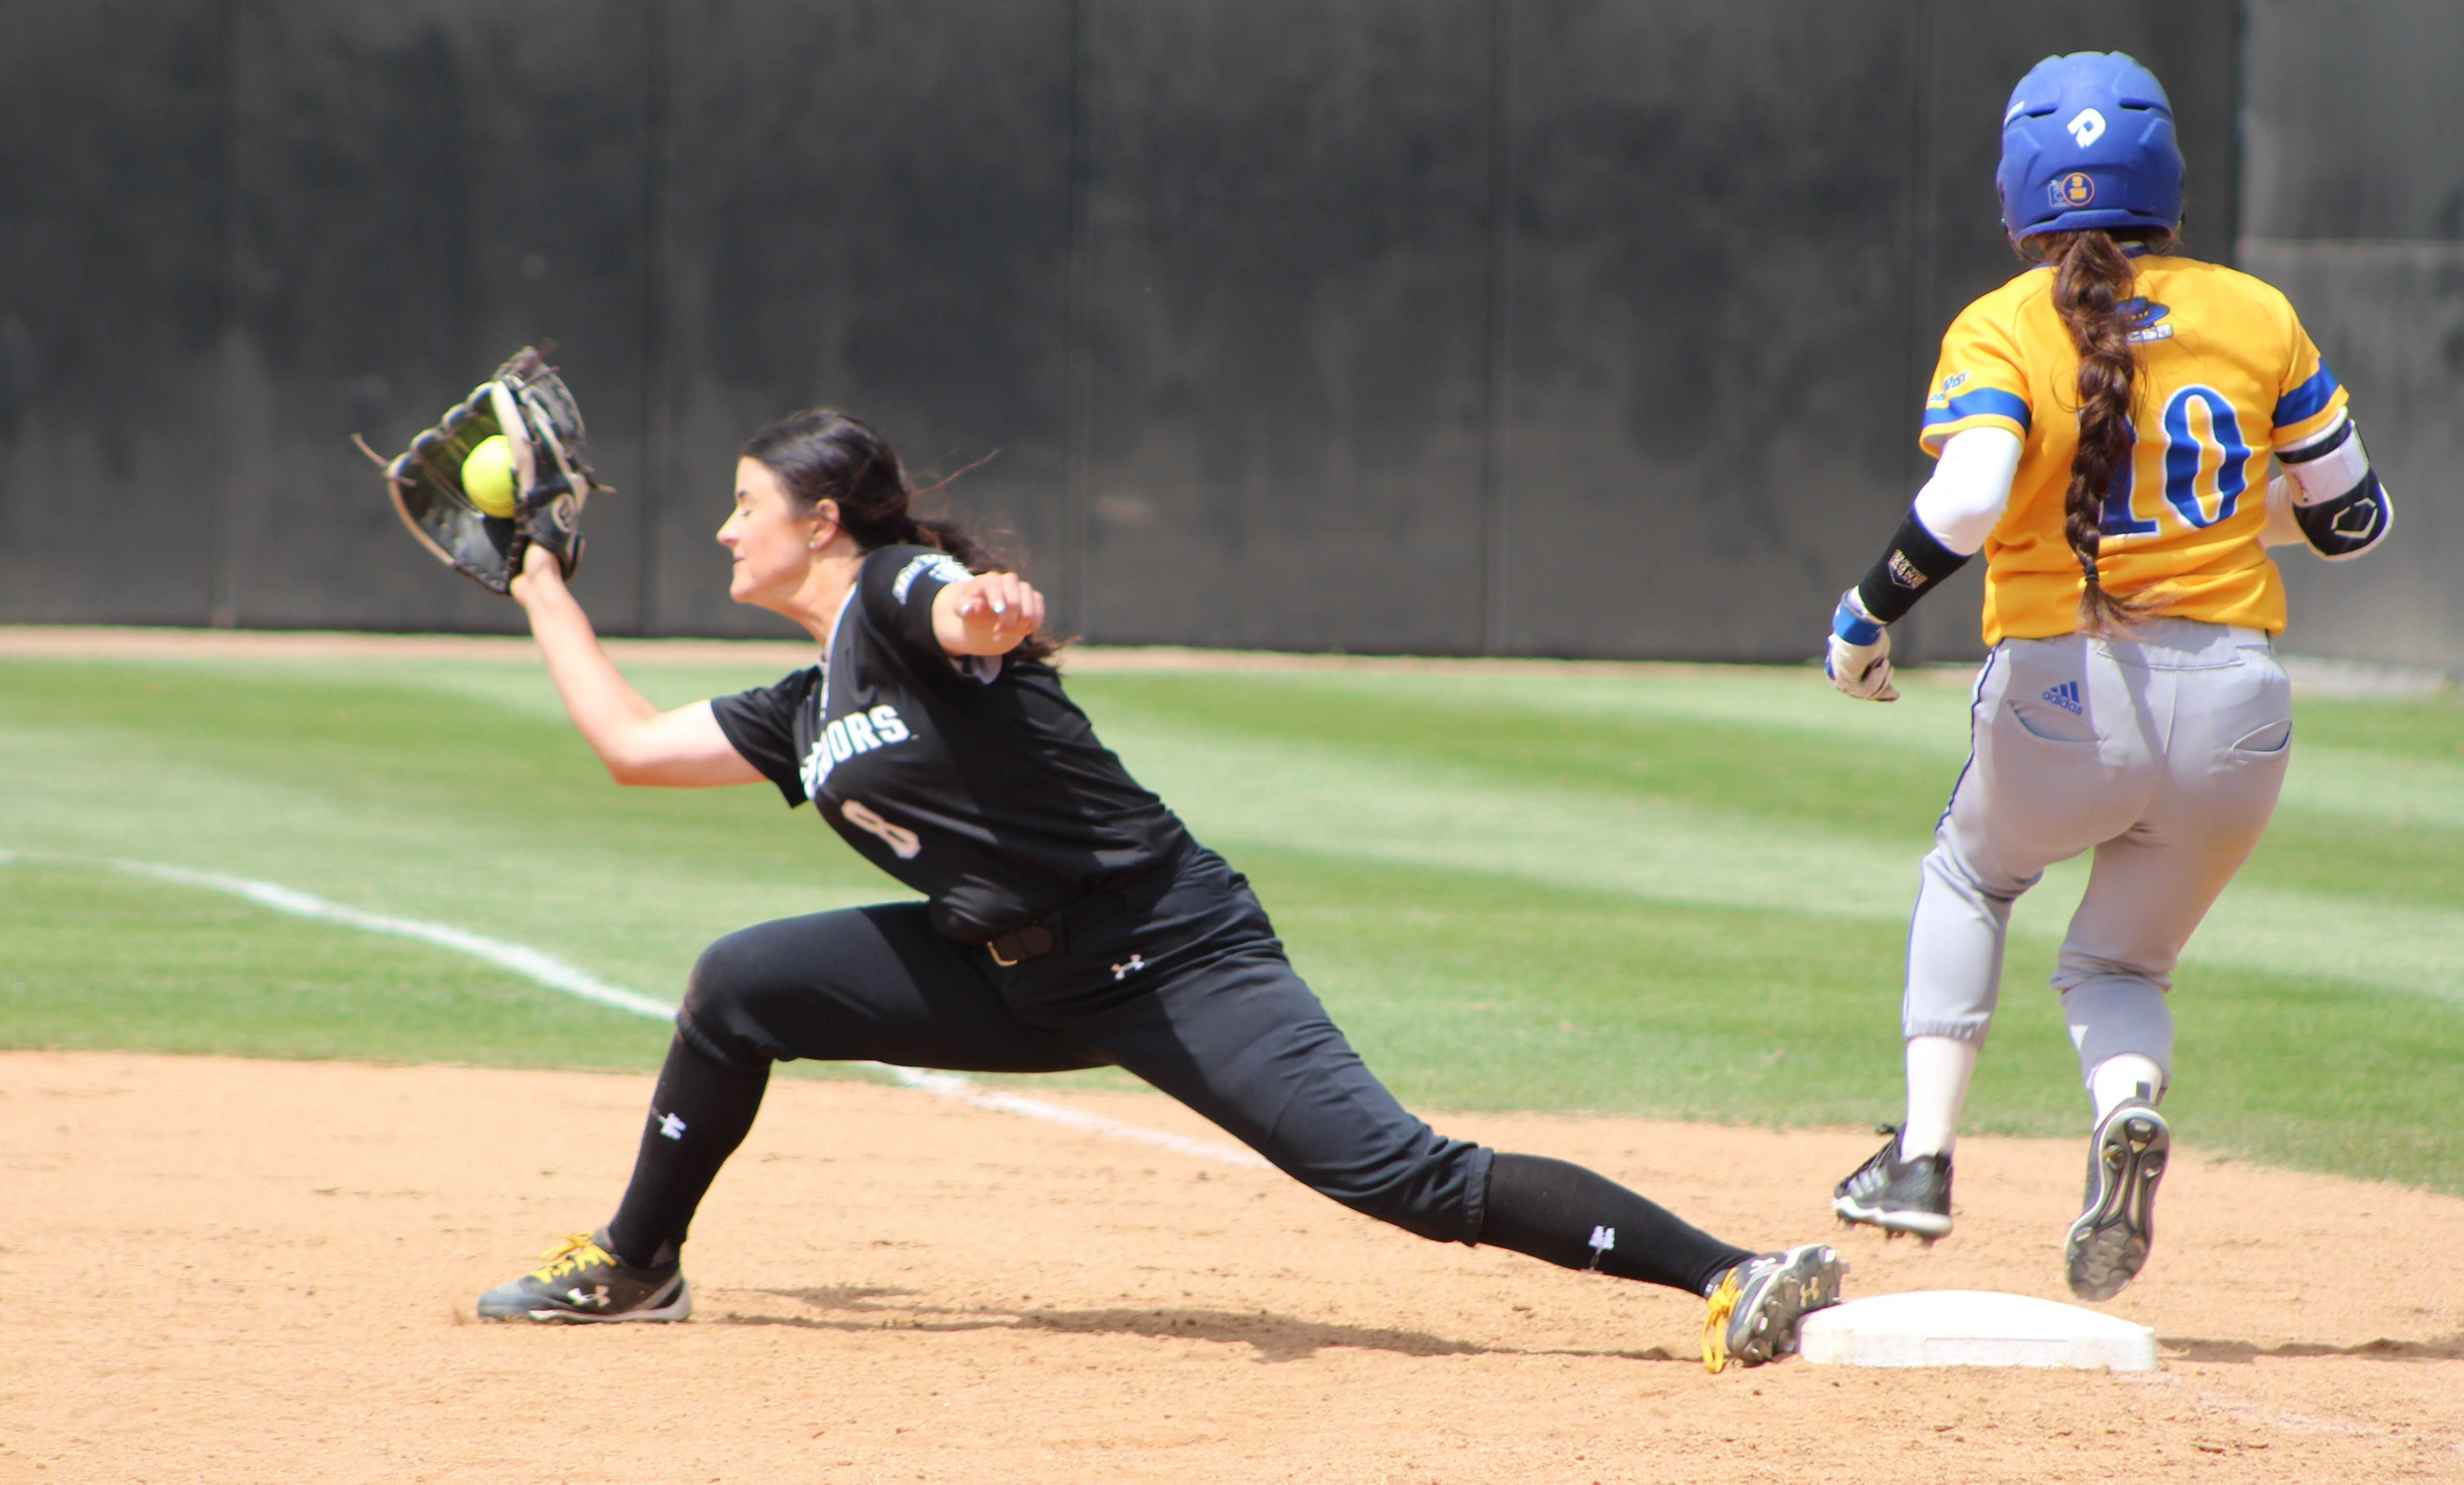 Second baseman, Mackenzie Babbitt, makes a catch in the last inning to win the game against UC Santa Barbara at CSUN Softball Field on April 29, 2018. Photo credit: Justin Lee